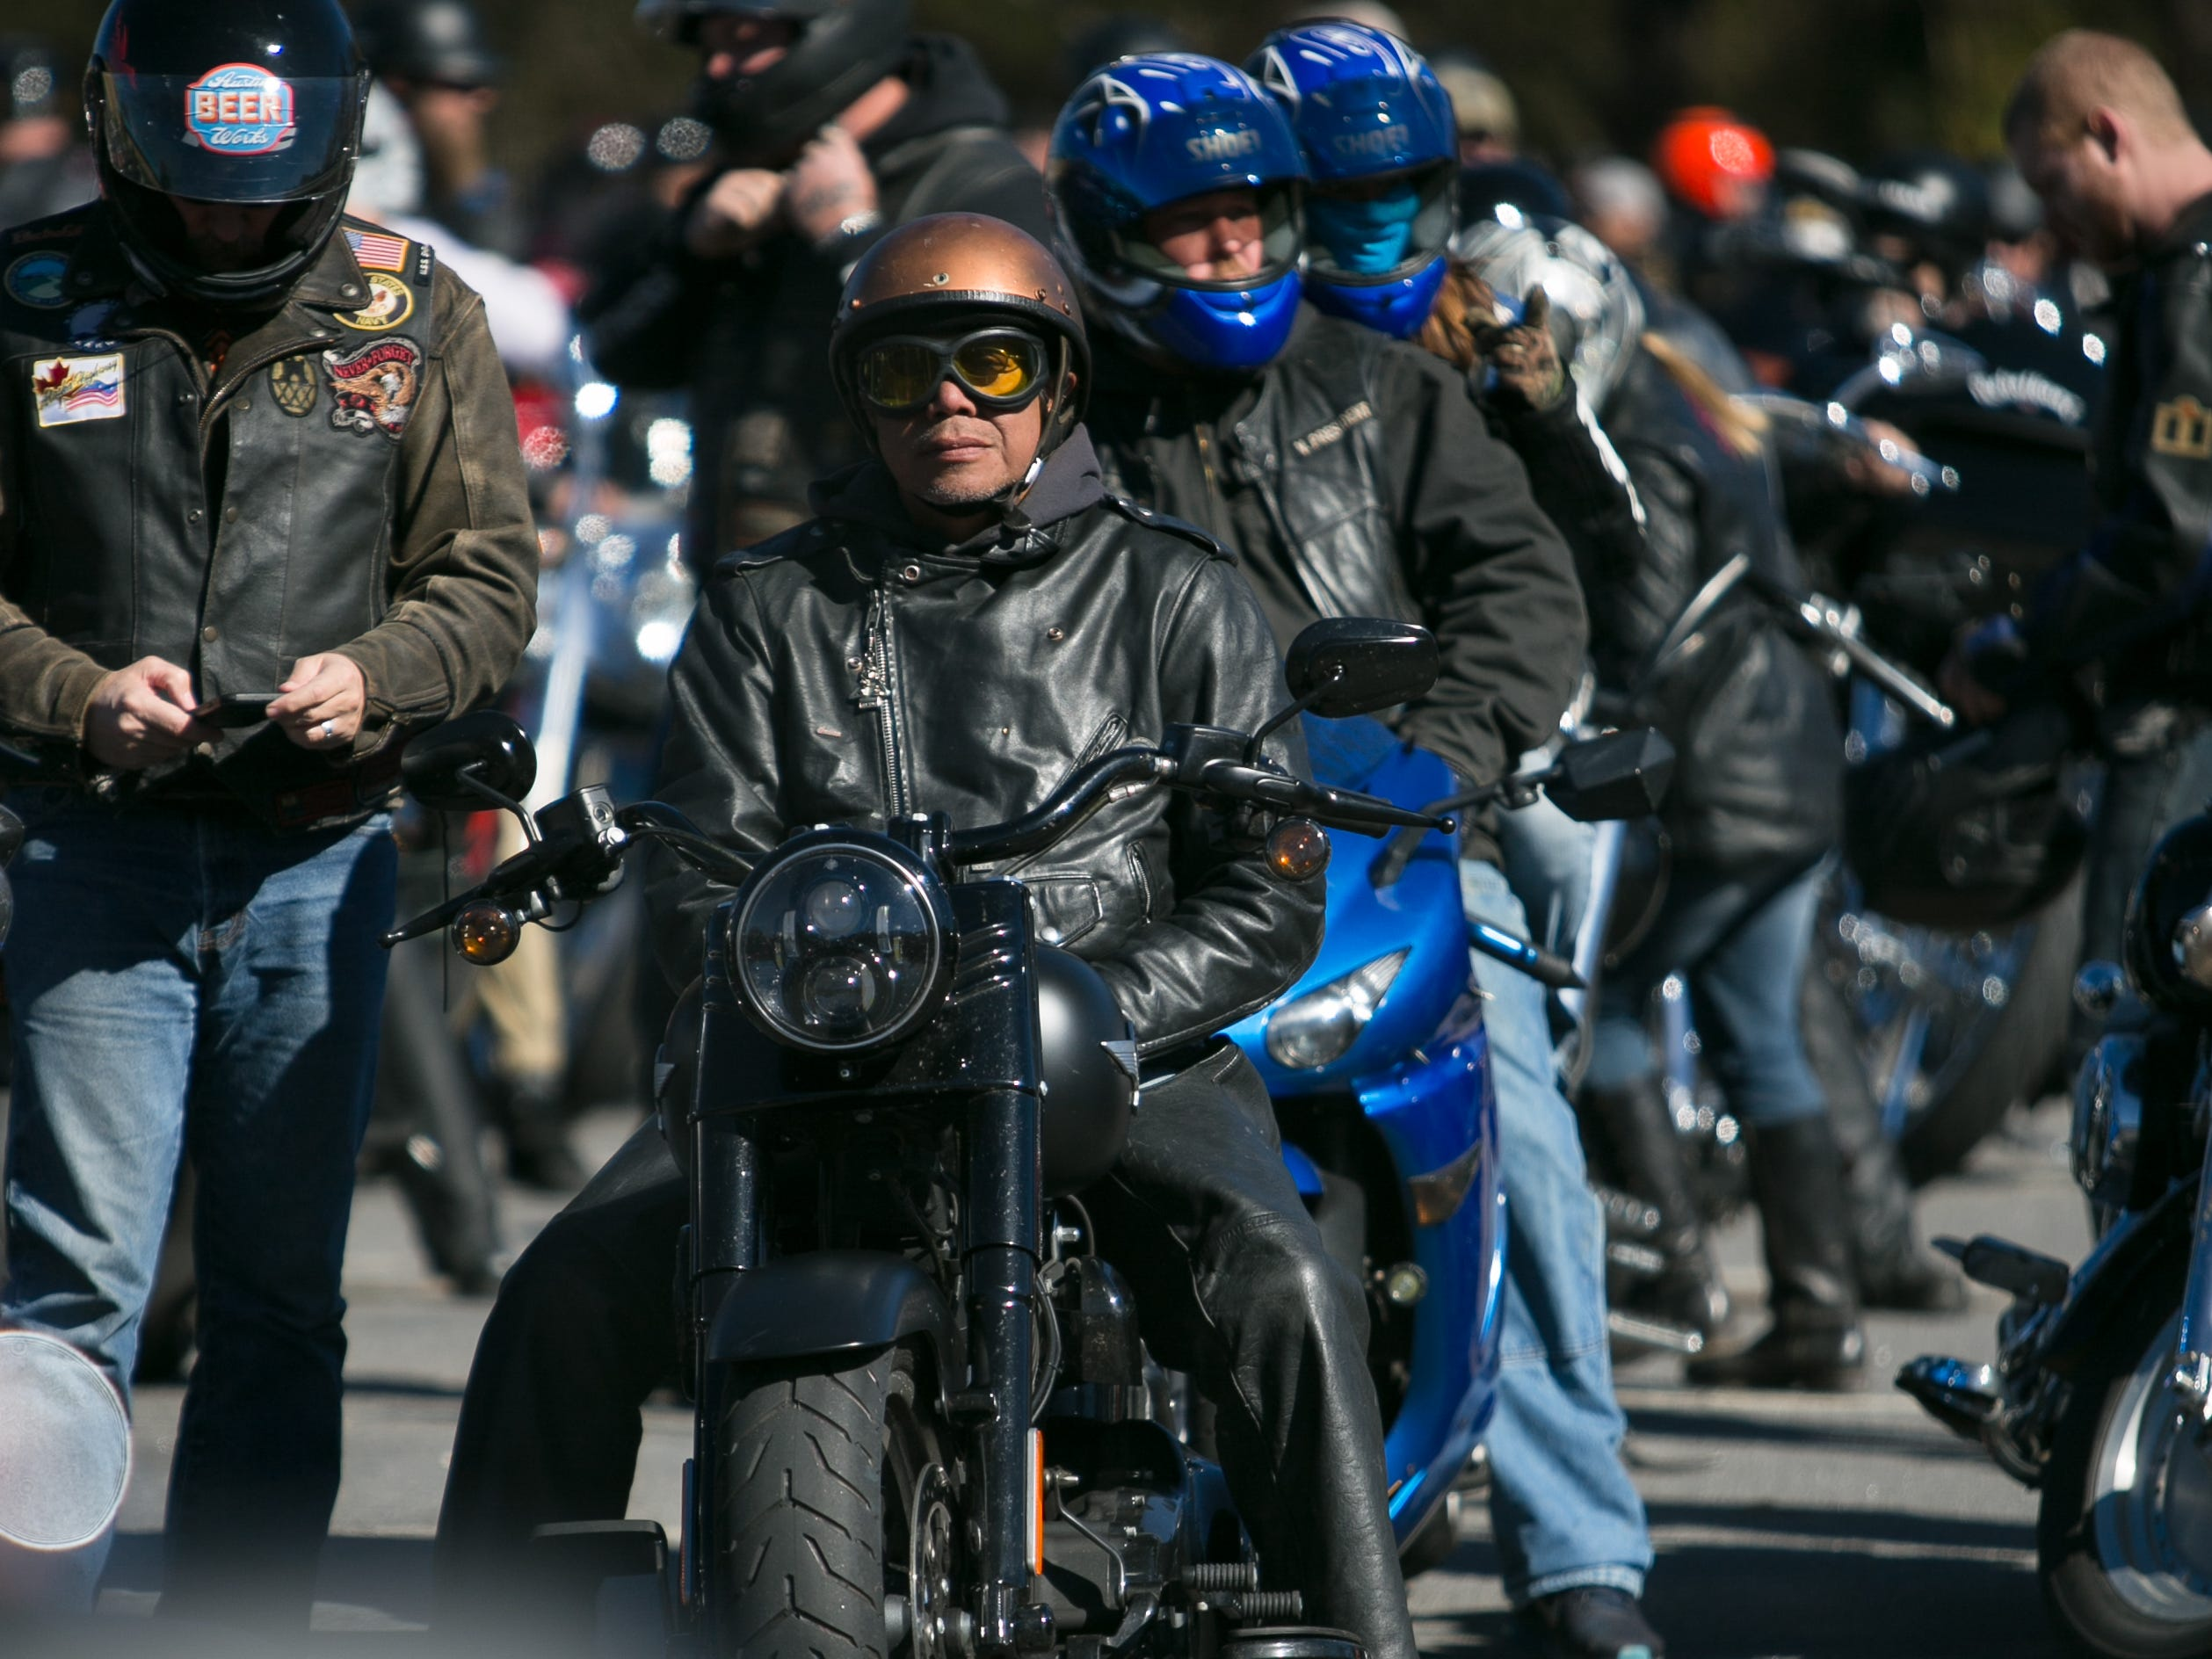 Scenes from the 38th annual Smoky Mountain Toy Run, held Saturday. The motorcycle ride began at Kearfott Manufacturing in Swannanoa and ended at City/County Plaza in downtown Asheville. The event is held to collect toys and money for the Eblen Charities' Saint Nicholas Project, which distributes toys to needy families during the Christmas season.